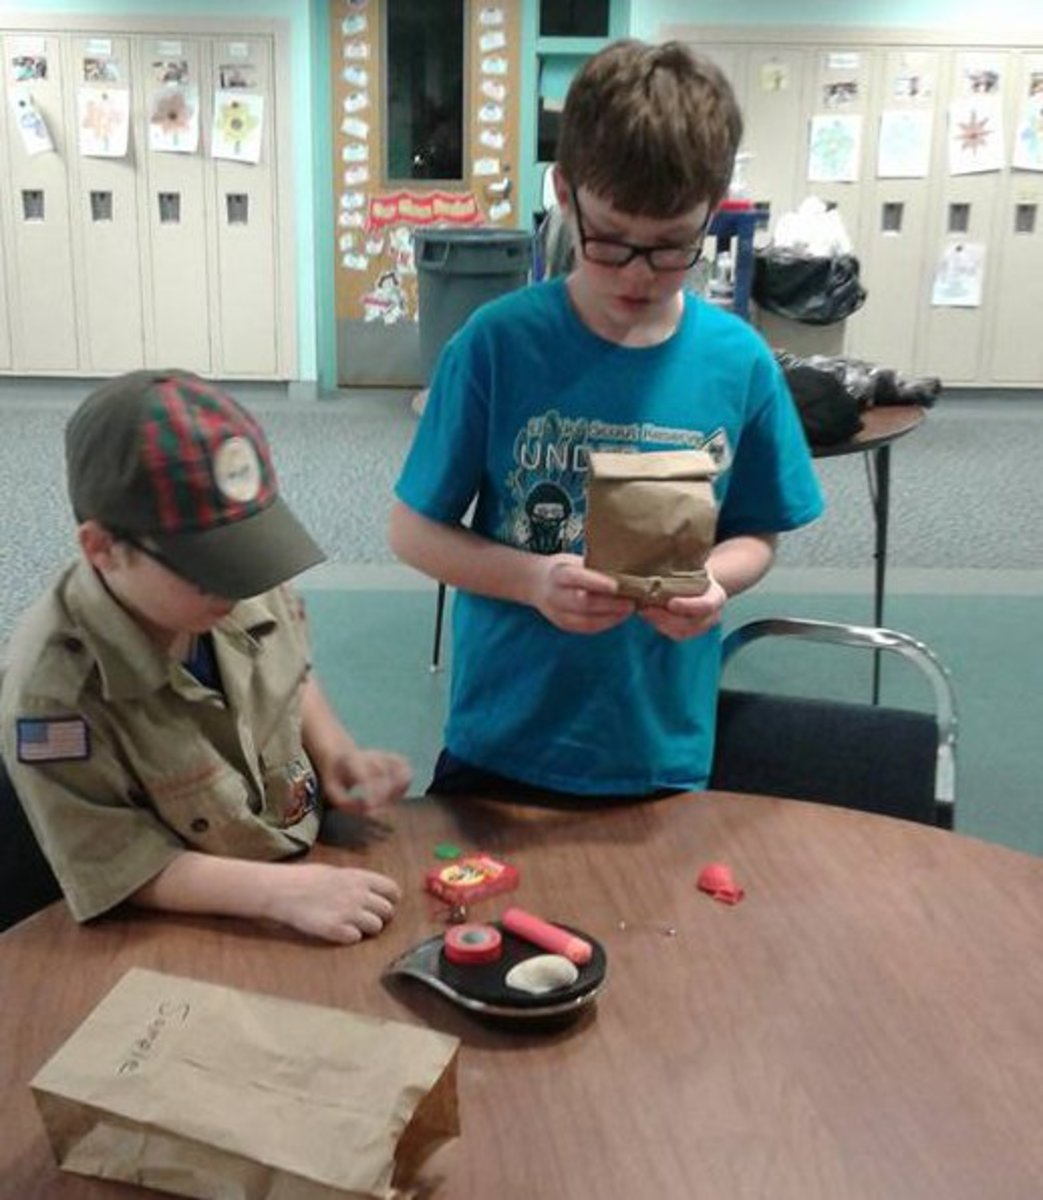 If small boxes are difficult to find, brown paper bags may also be used to conceal items for the Scientific Method game. Paper bags allow students to use their sense of touch, which may make guessing the objects easier.